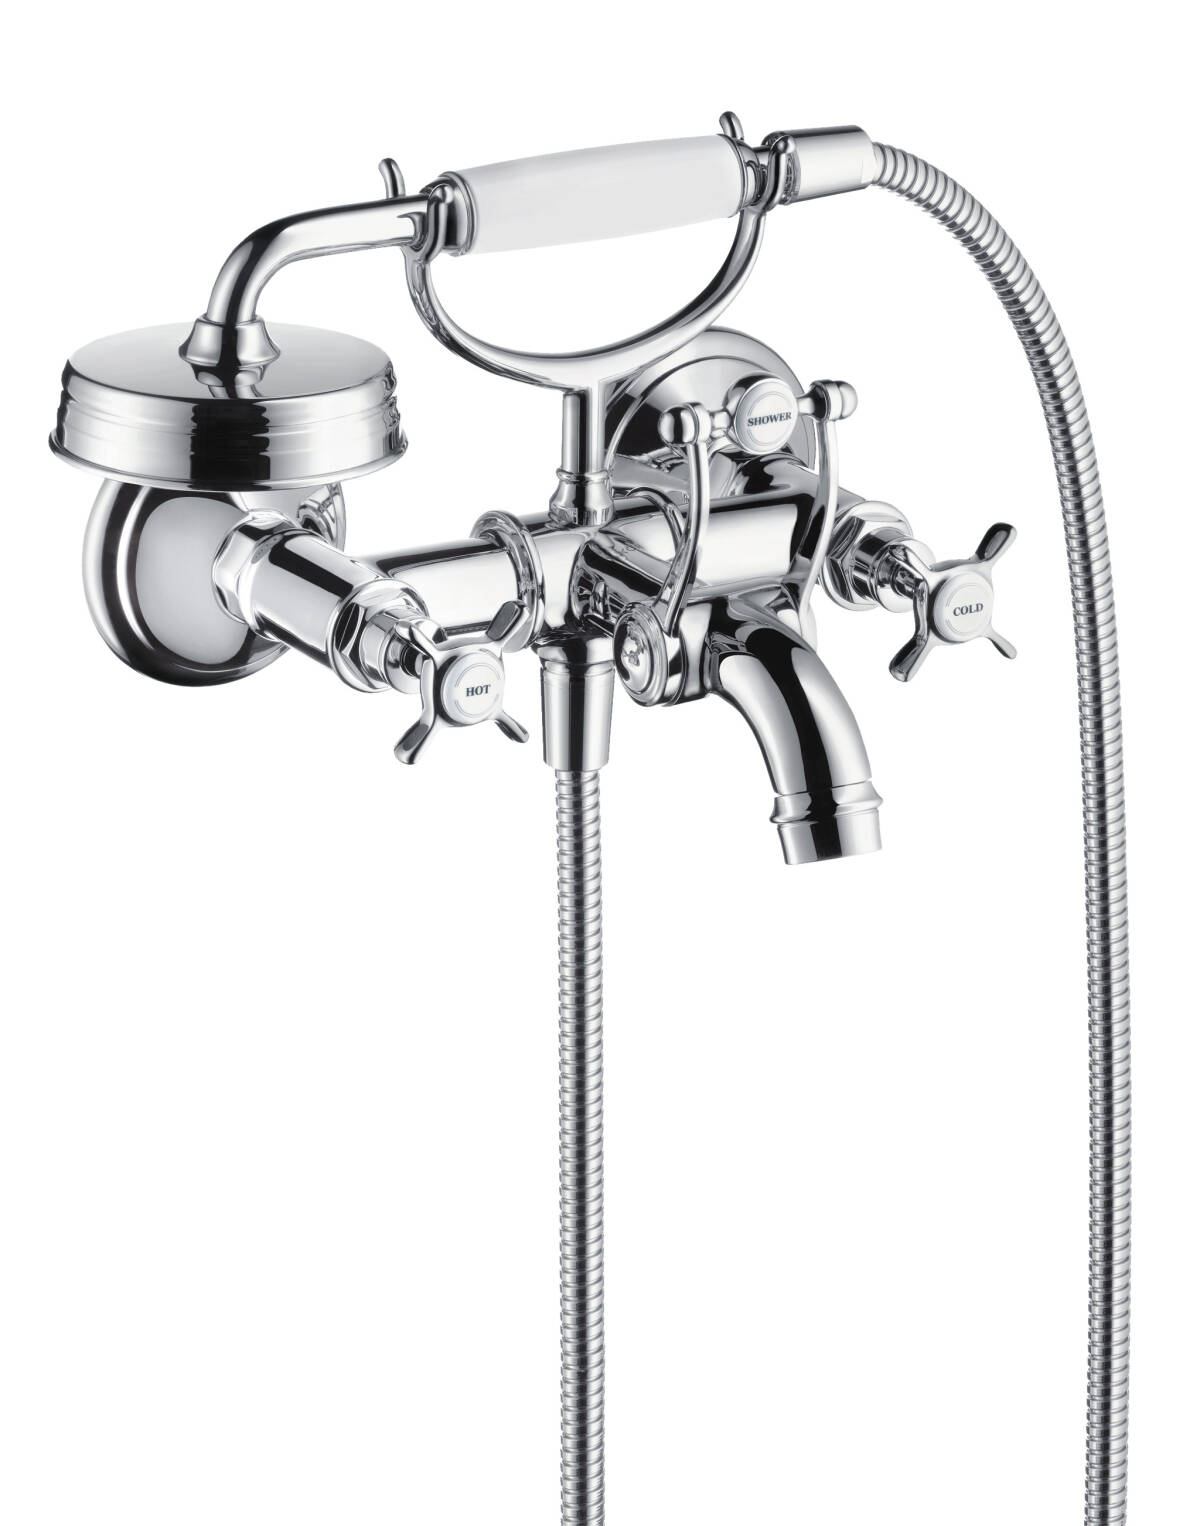 2-handle bath mixer for exposed installation, Chrome, 16540000